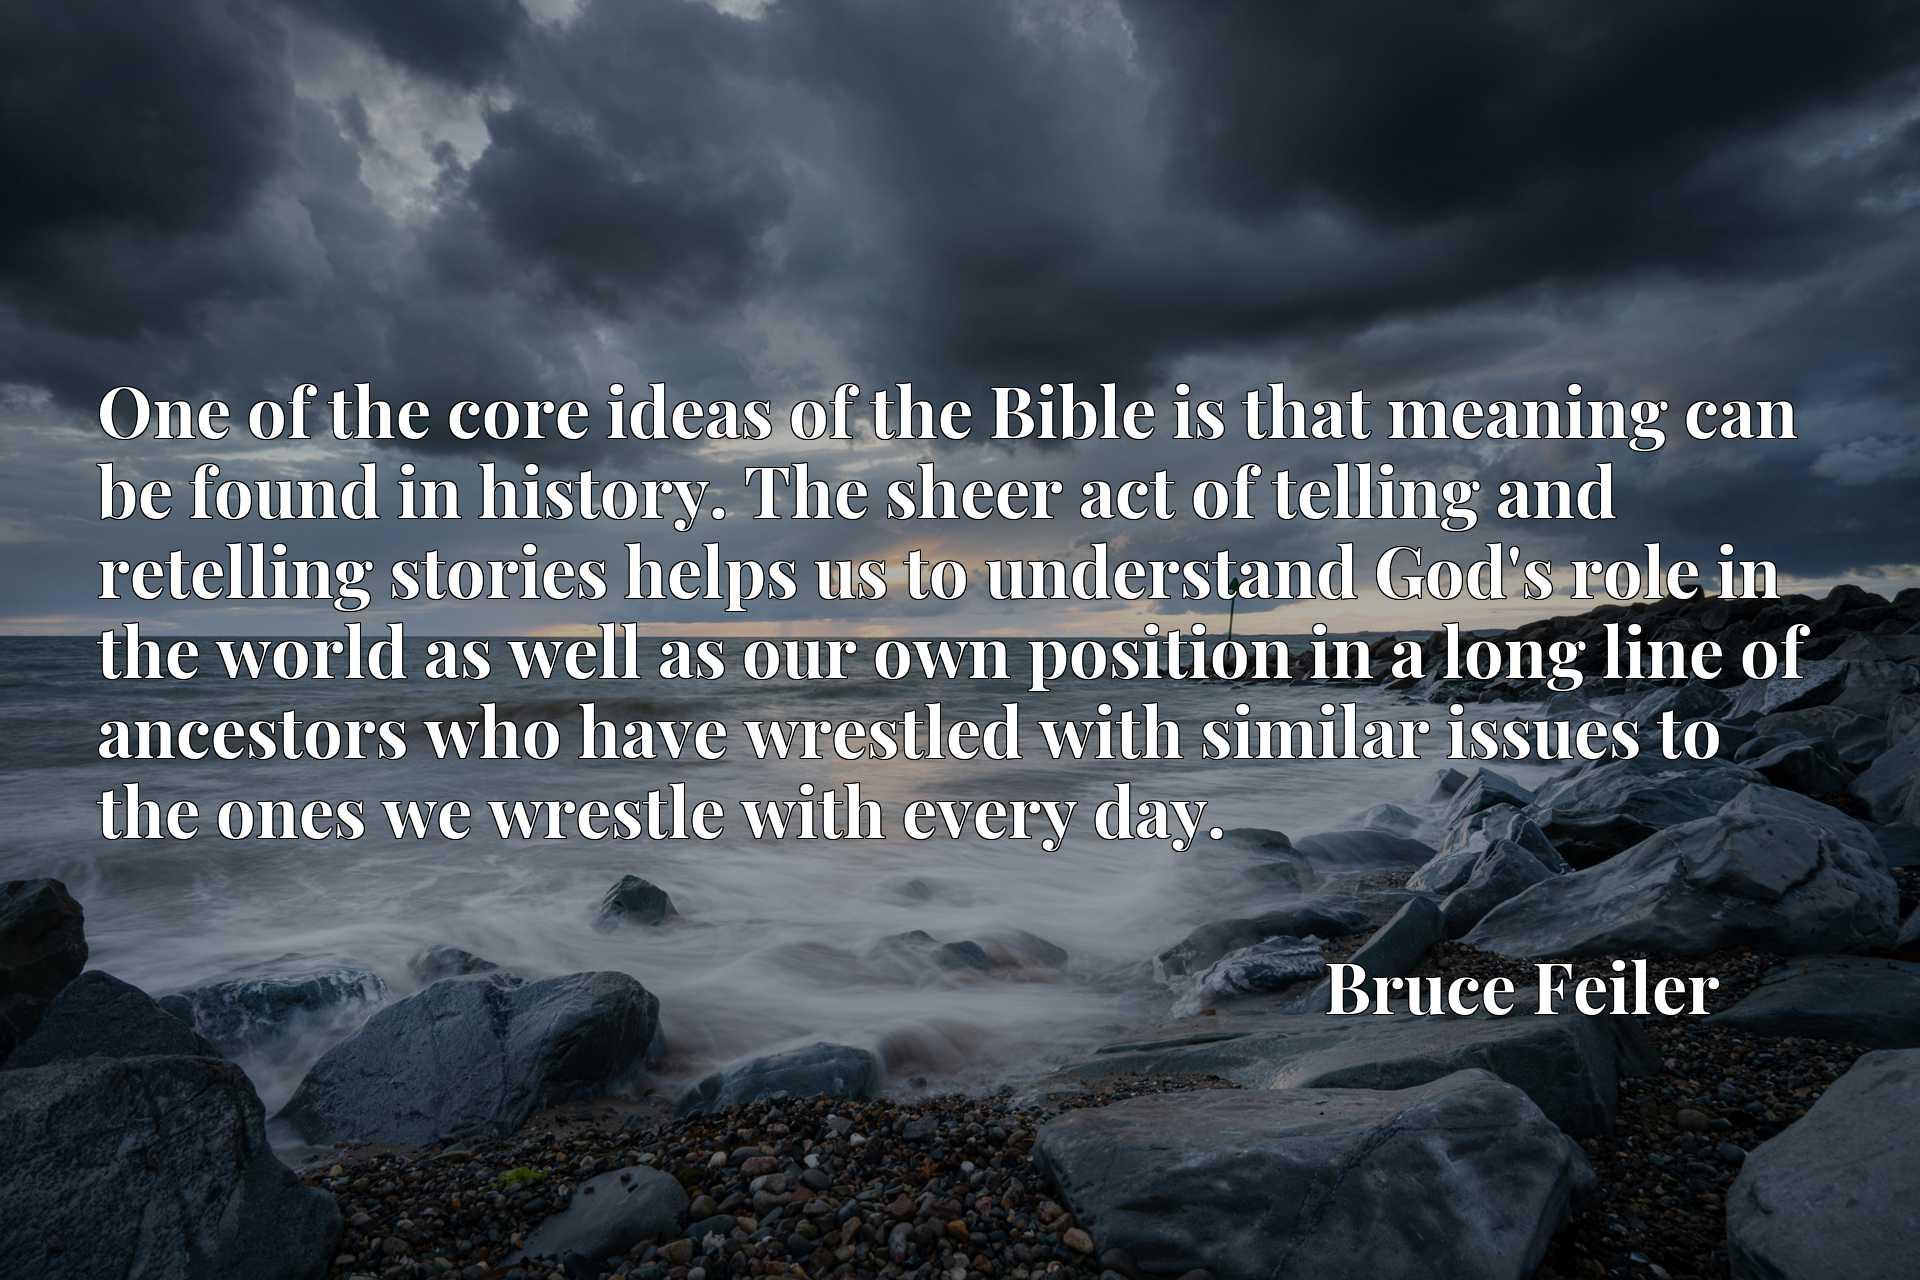 One of the core ideas of the Bible is that meaning can be found in history. The sheer act of telling and retelling stories helps us to understand God's role in the world as well as our own position in a long line of ancestors who have wrestled with similar issues to the ones we wrestle with every day.